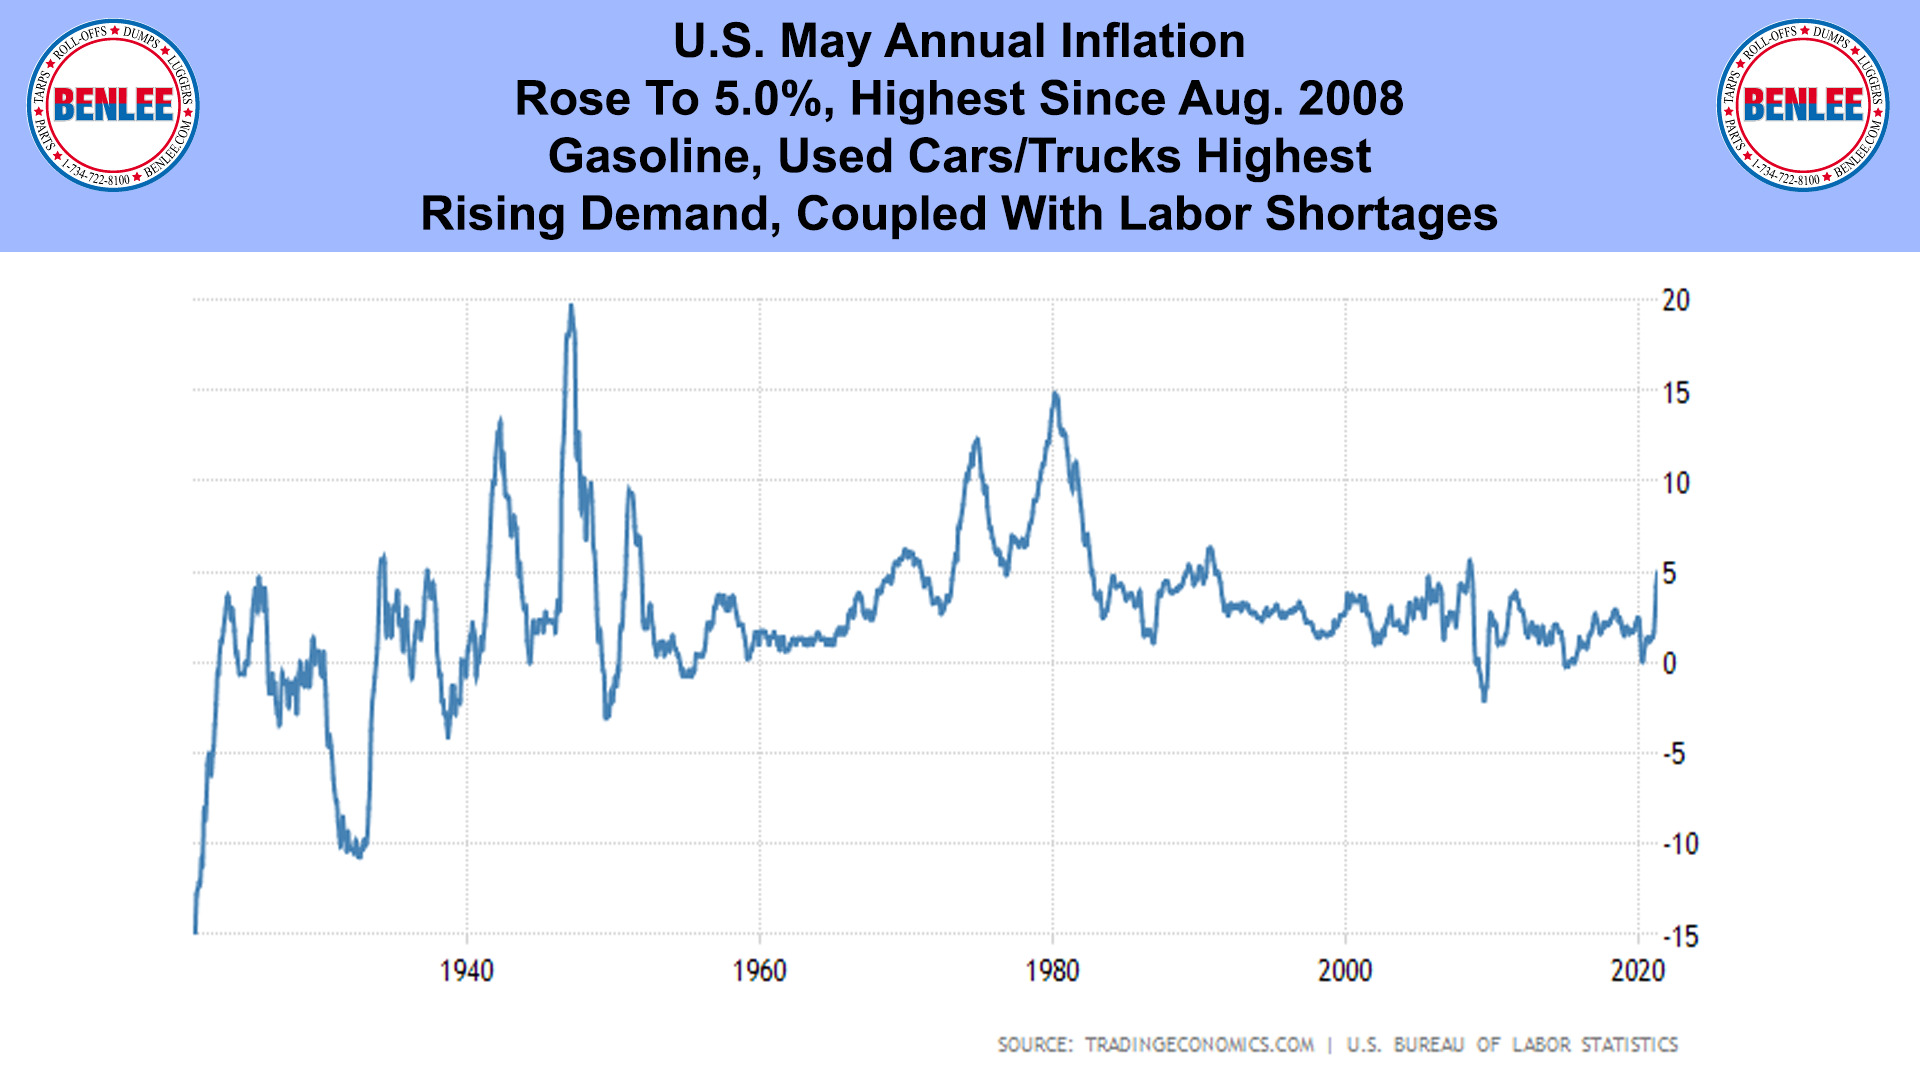 U.S. May Annual Inflation